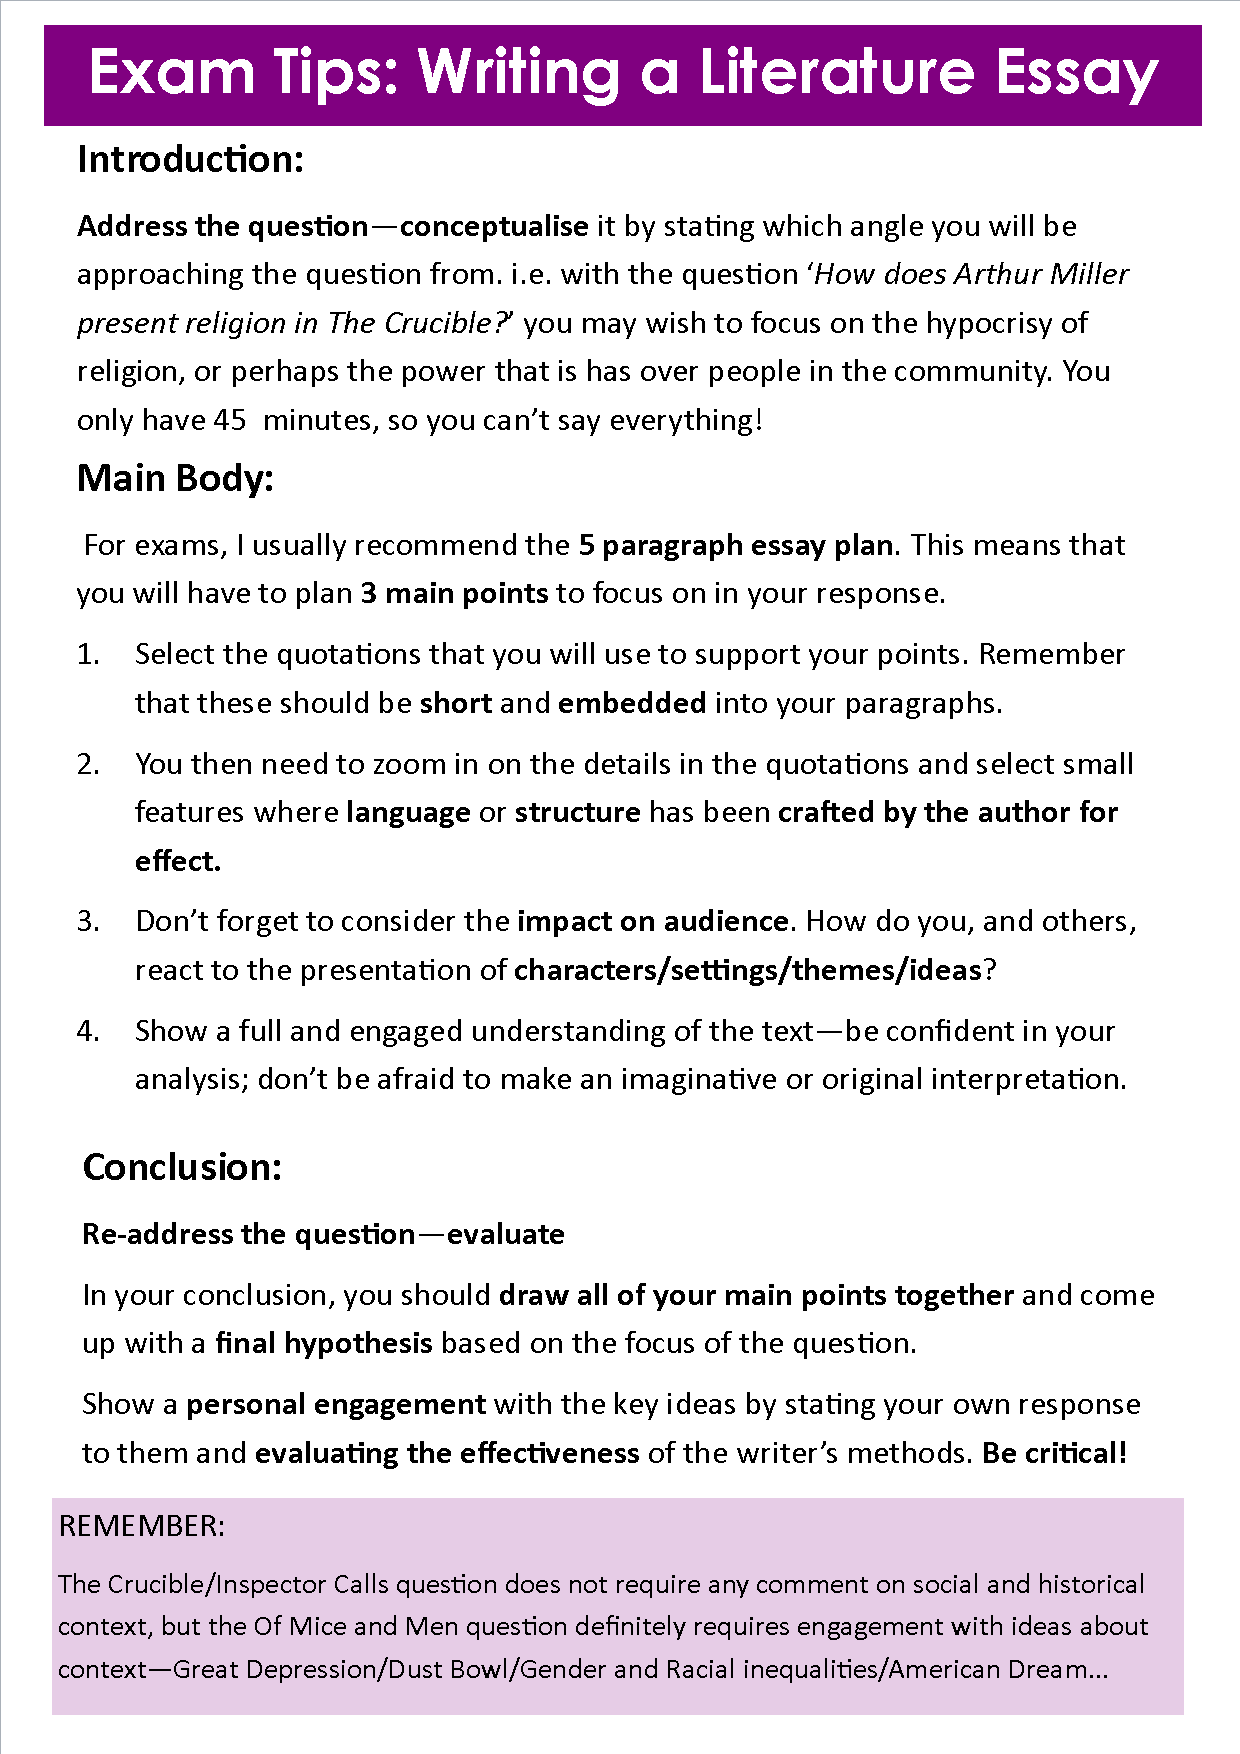 essay of the crucible essay for the crucible literature essay on  2014 miss ryan s gcse english media writing a lit essay